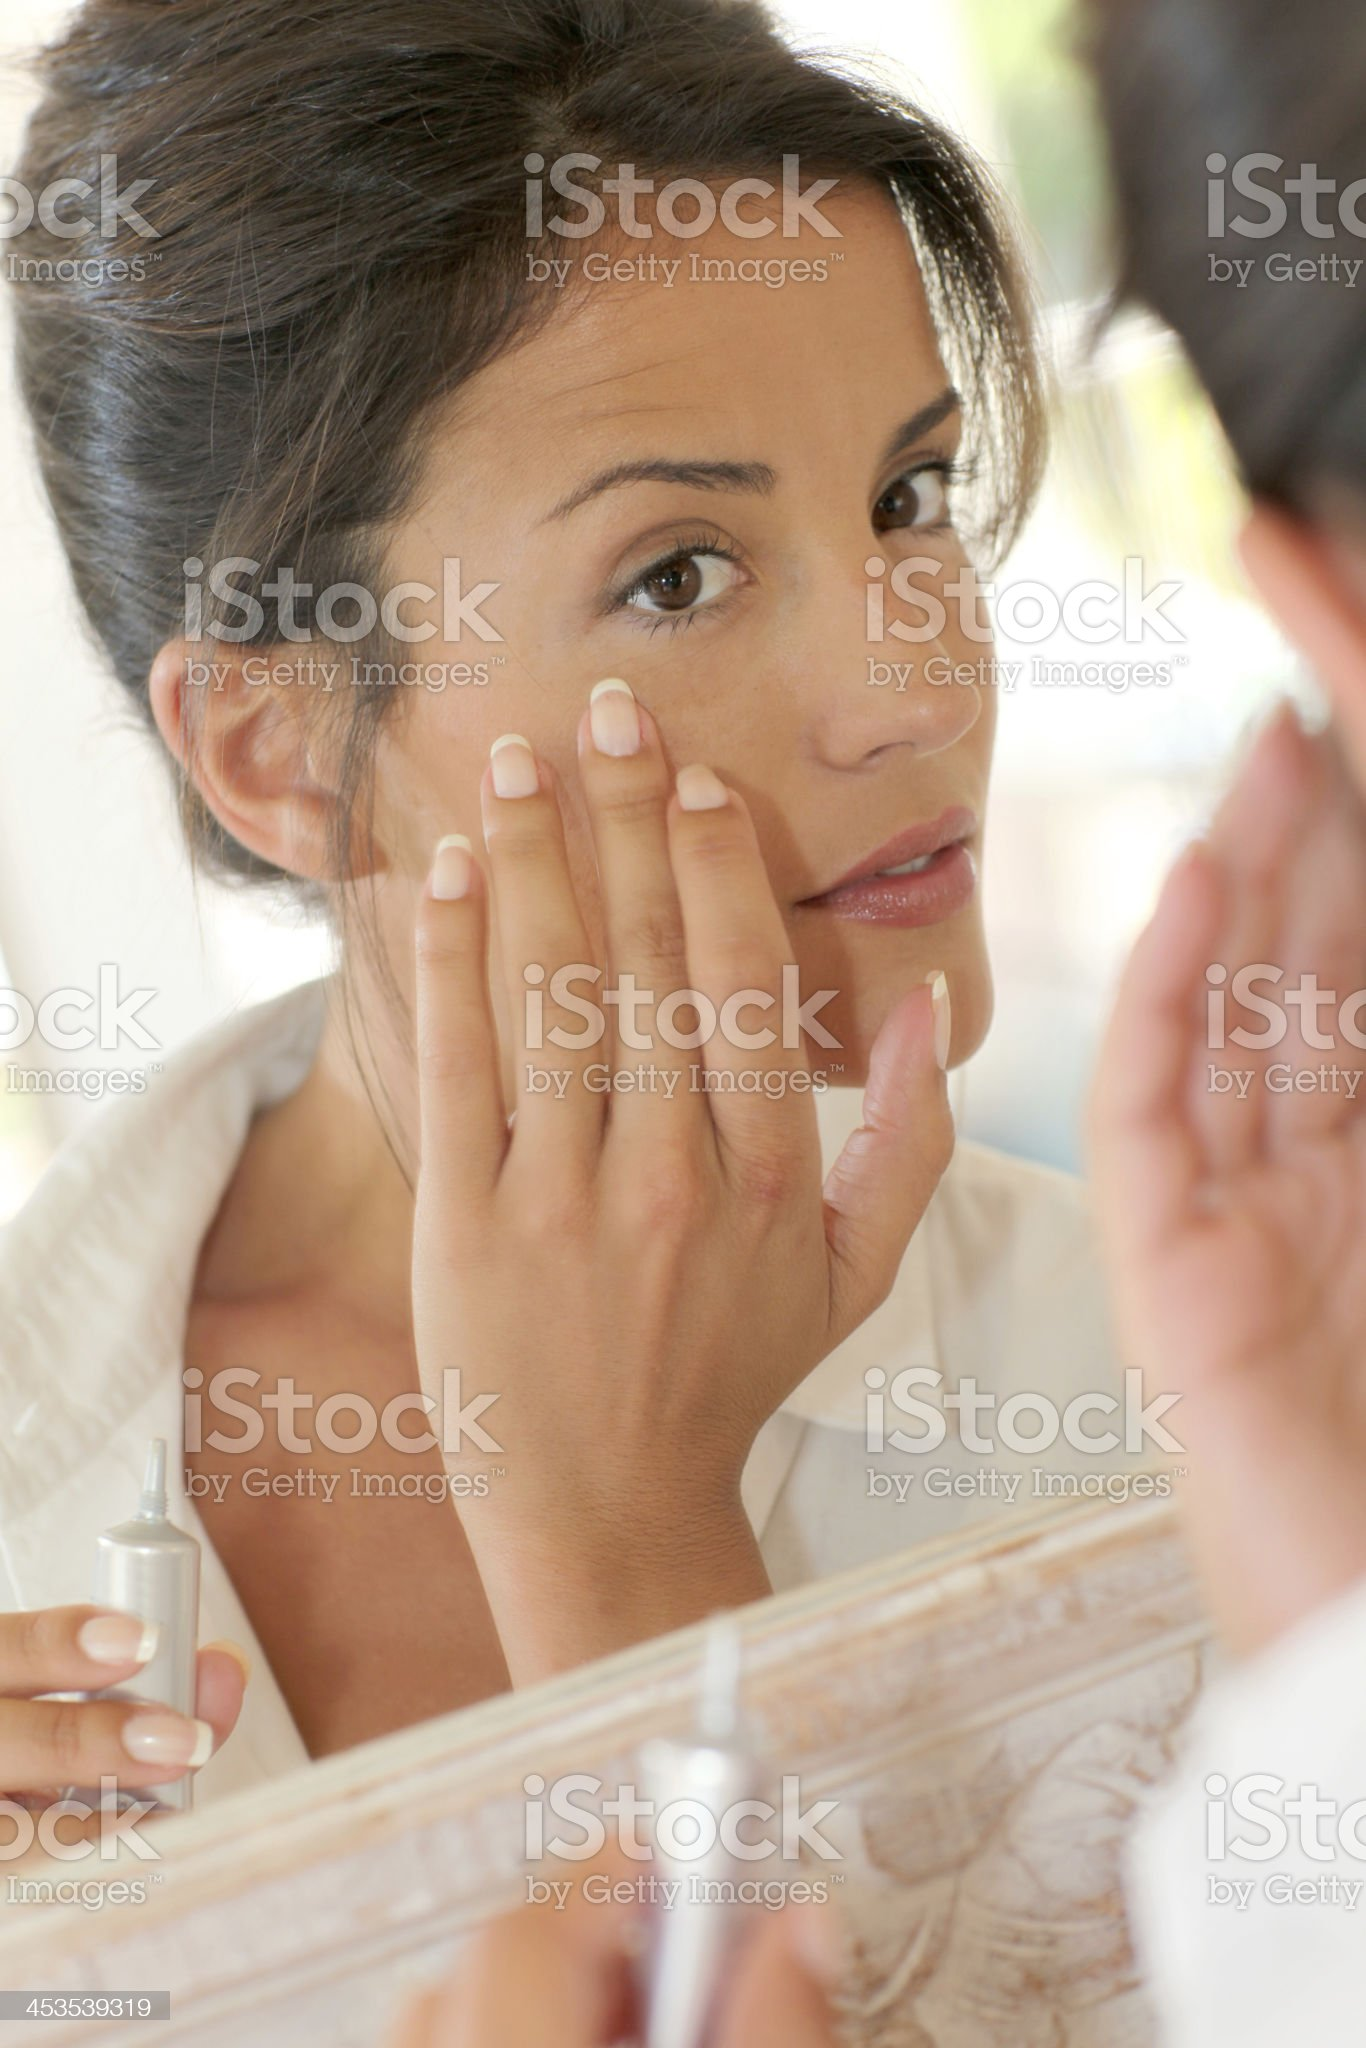 Makeup session for a pretty woman royalty-free stock photo